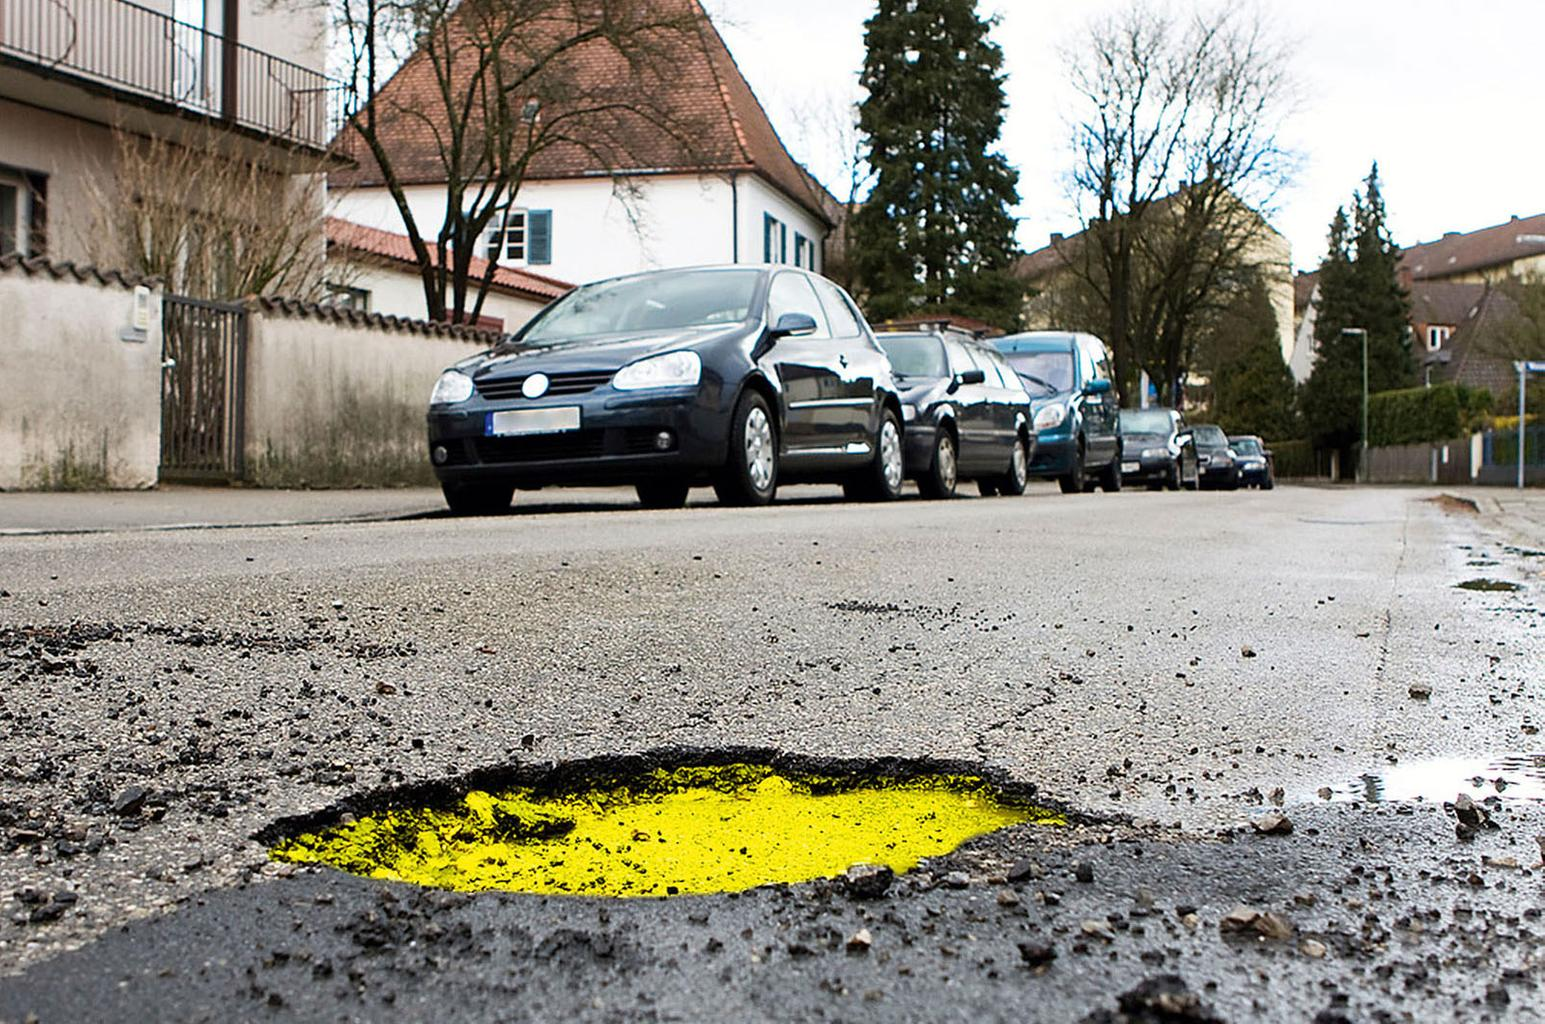 UK's pothole-blighted roads will cost more than £9 billion to repair